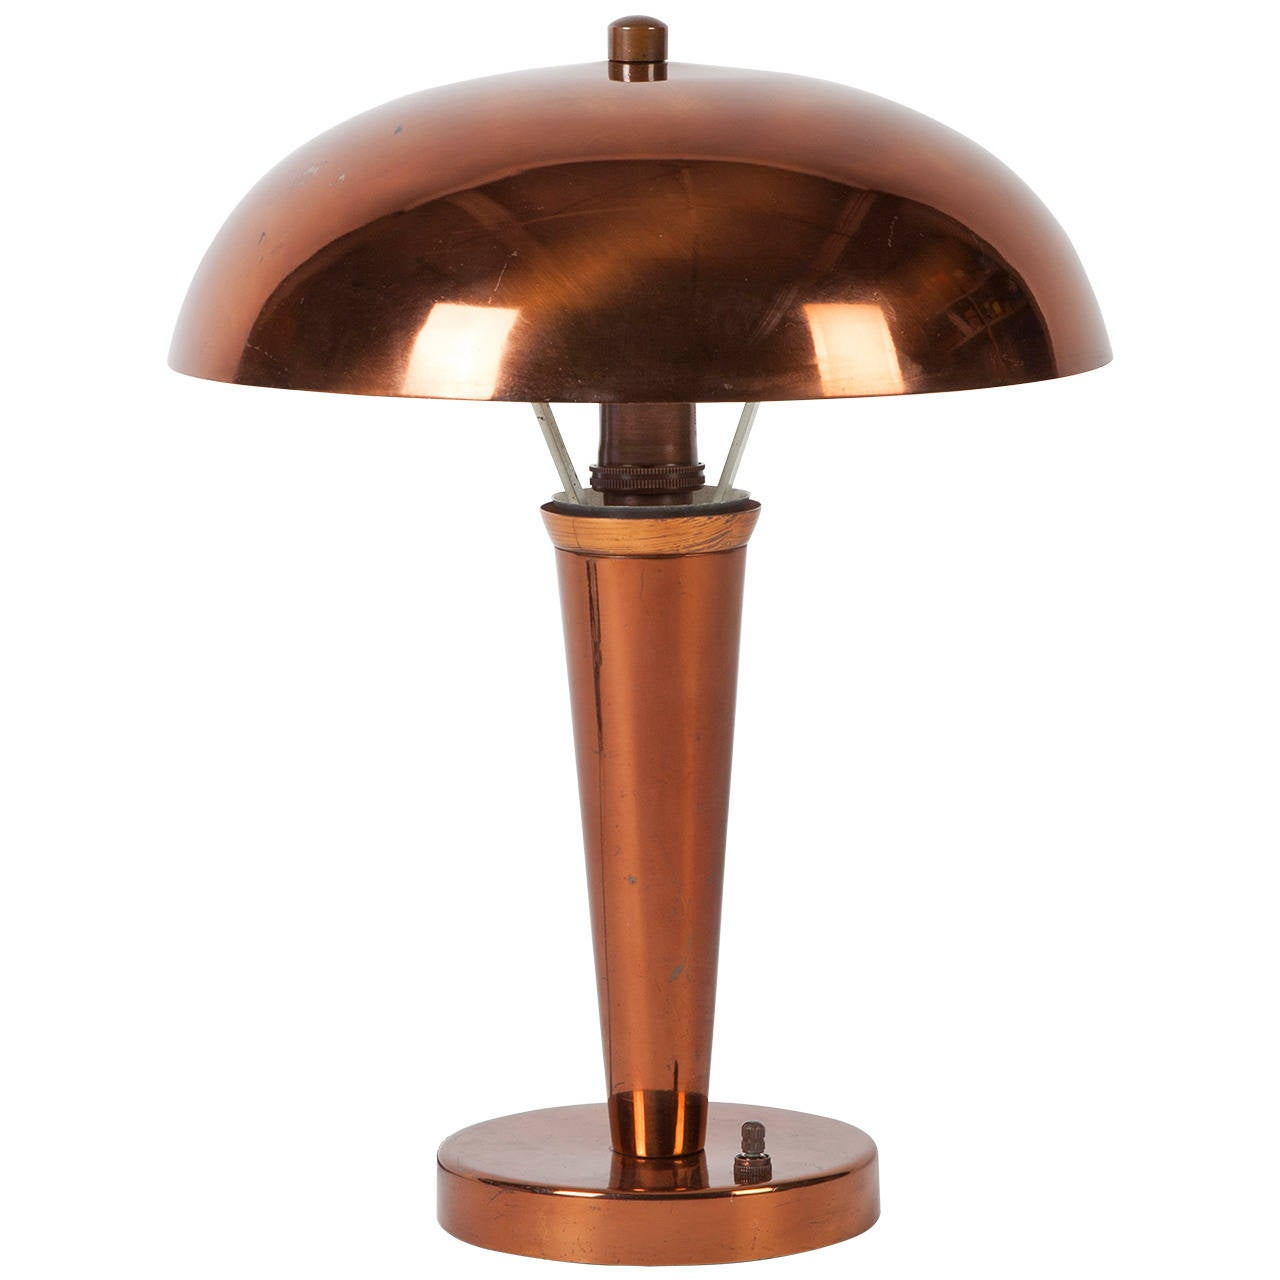 This Aged Copper Table Lamp is no longer available.